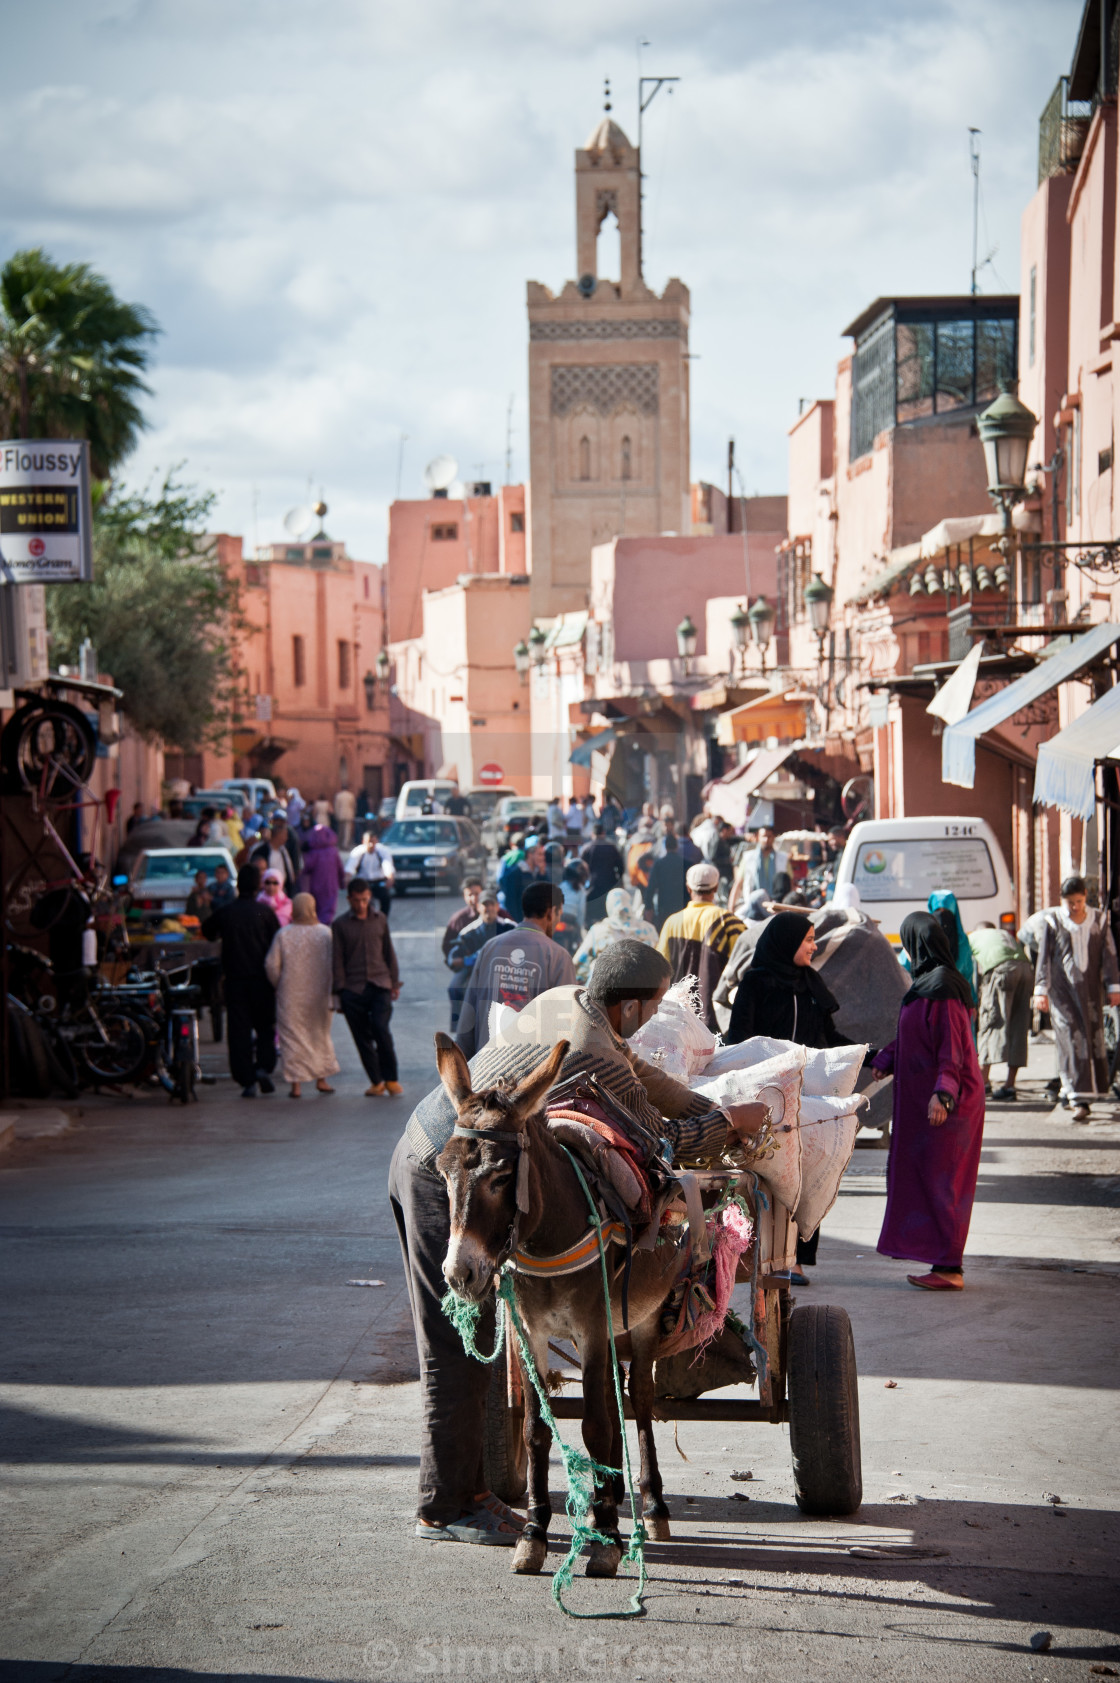 """18-04-11. Marrakech, Morocco. Pedestrians, cars and donkeys share the road..."" stock image"